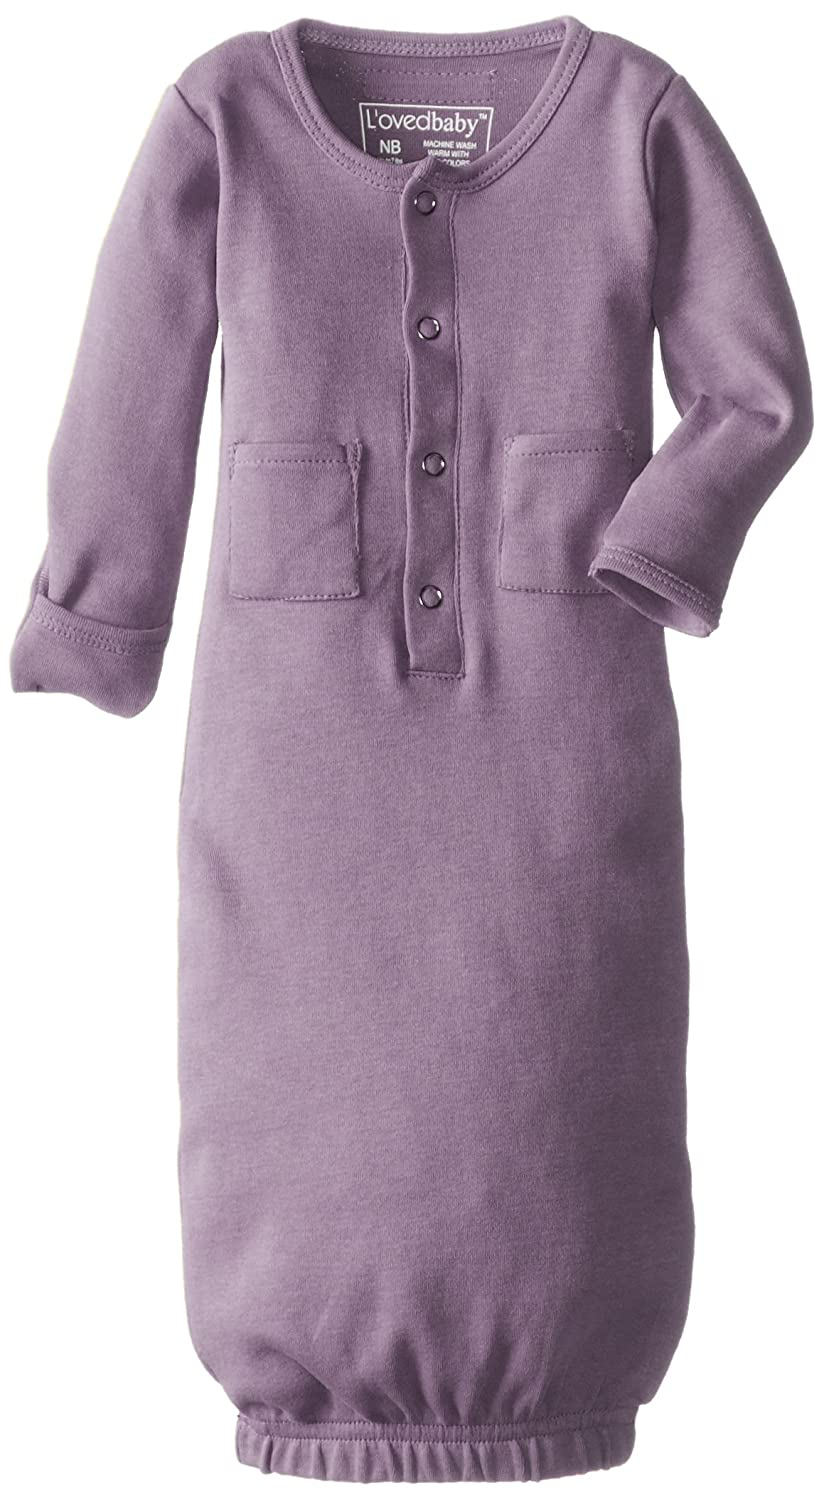 L'ovedbaby Unisex Baby Organic Gown L' ovedbaby - Clothing OR442